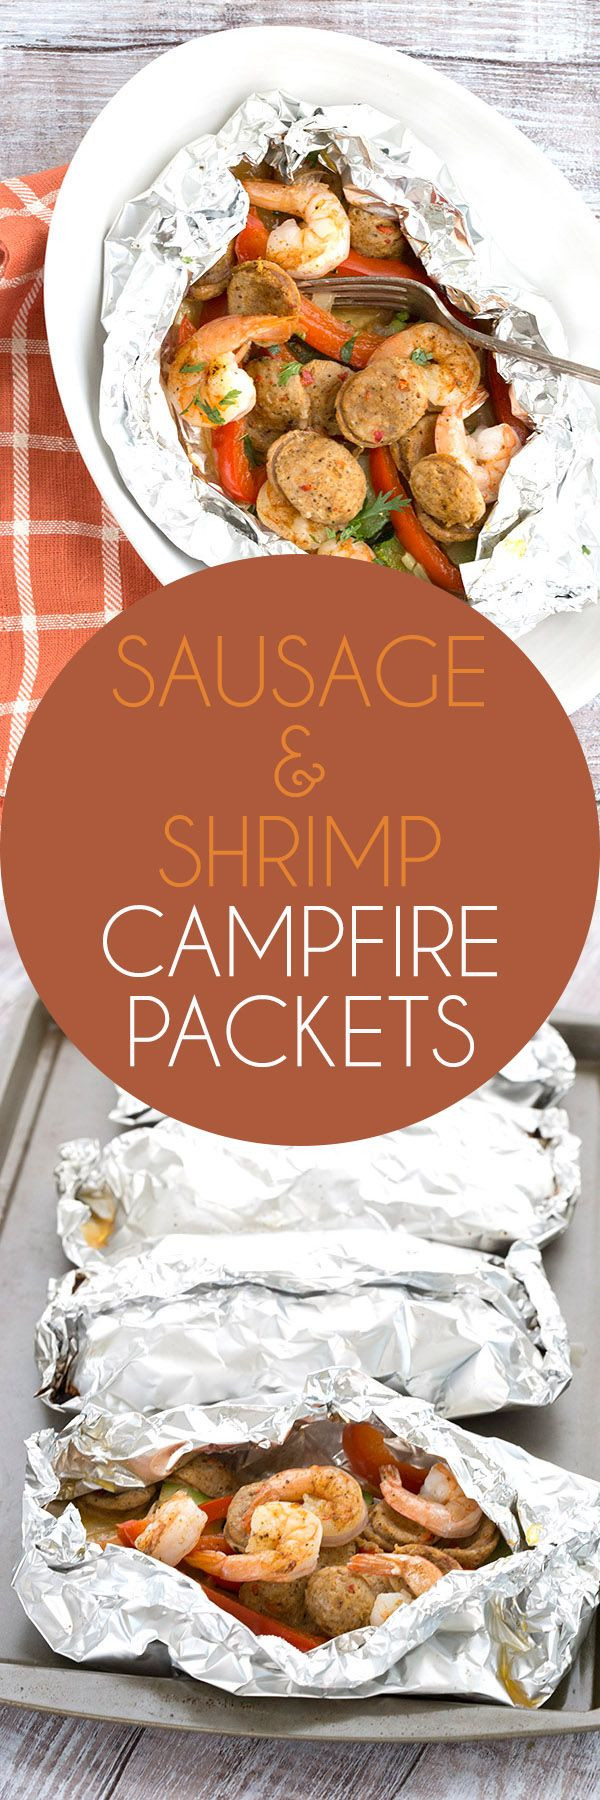 Low Carb Foil Packet Dinners  Best 25 Hobo camping meals ideas on Pinterest